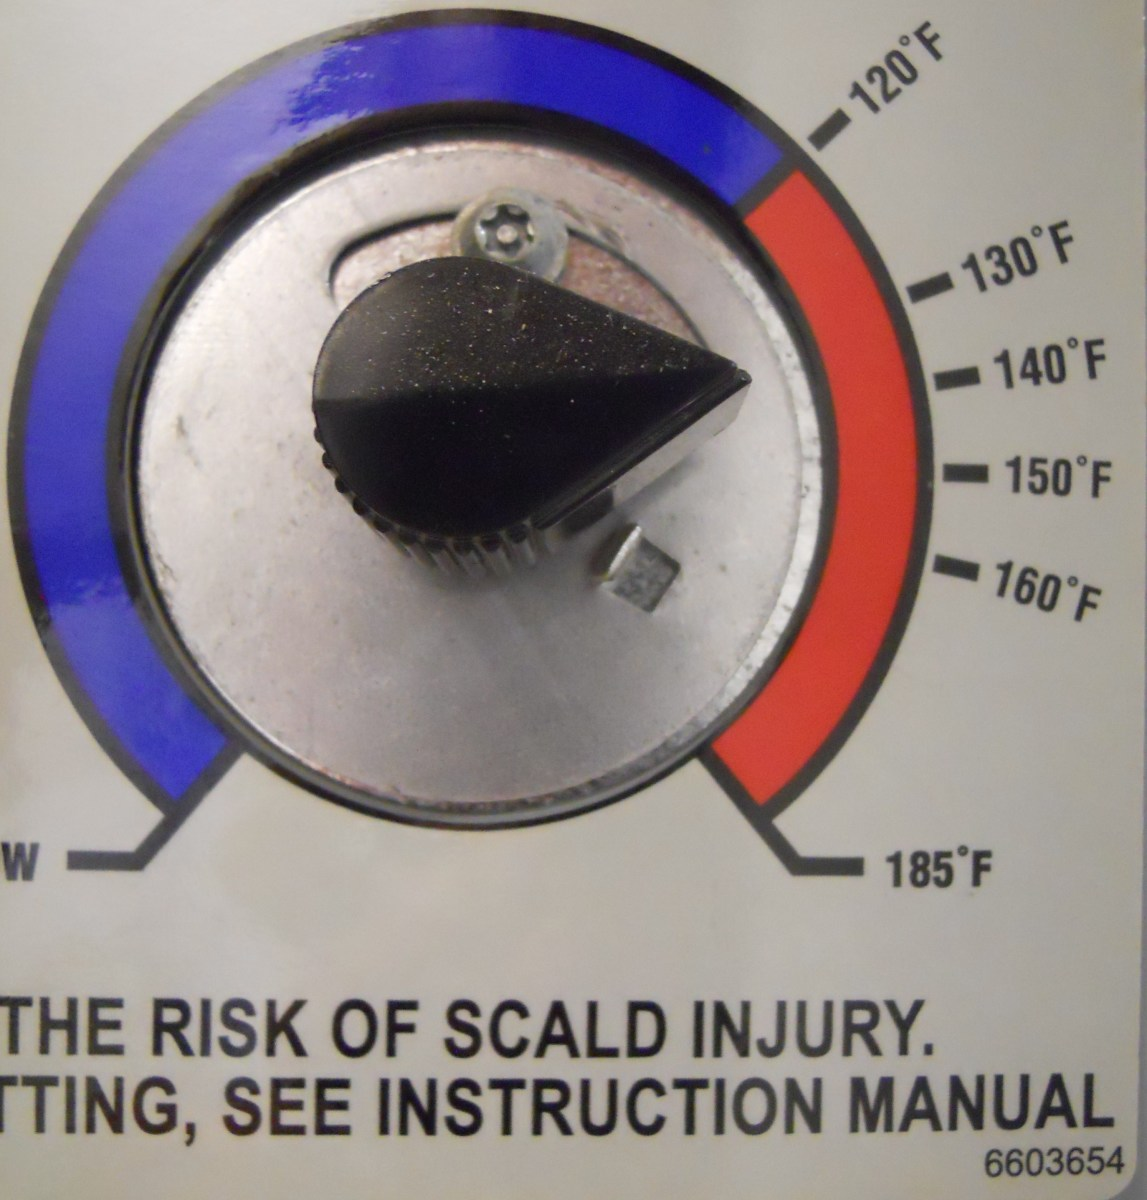 The thermostat on you water heater should be set to 120-135F or around 50C.